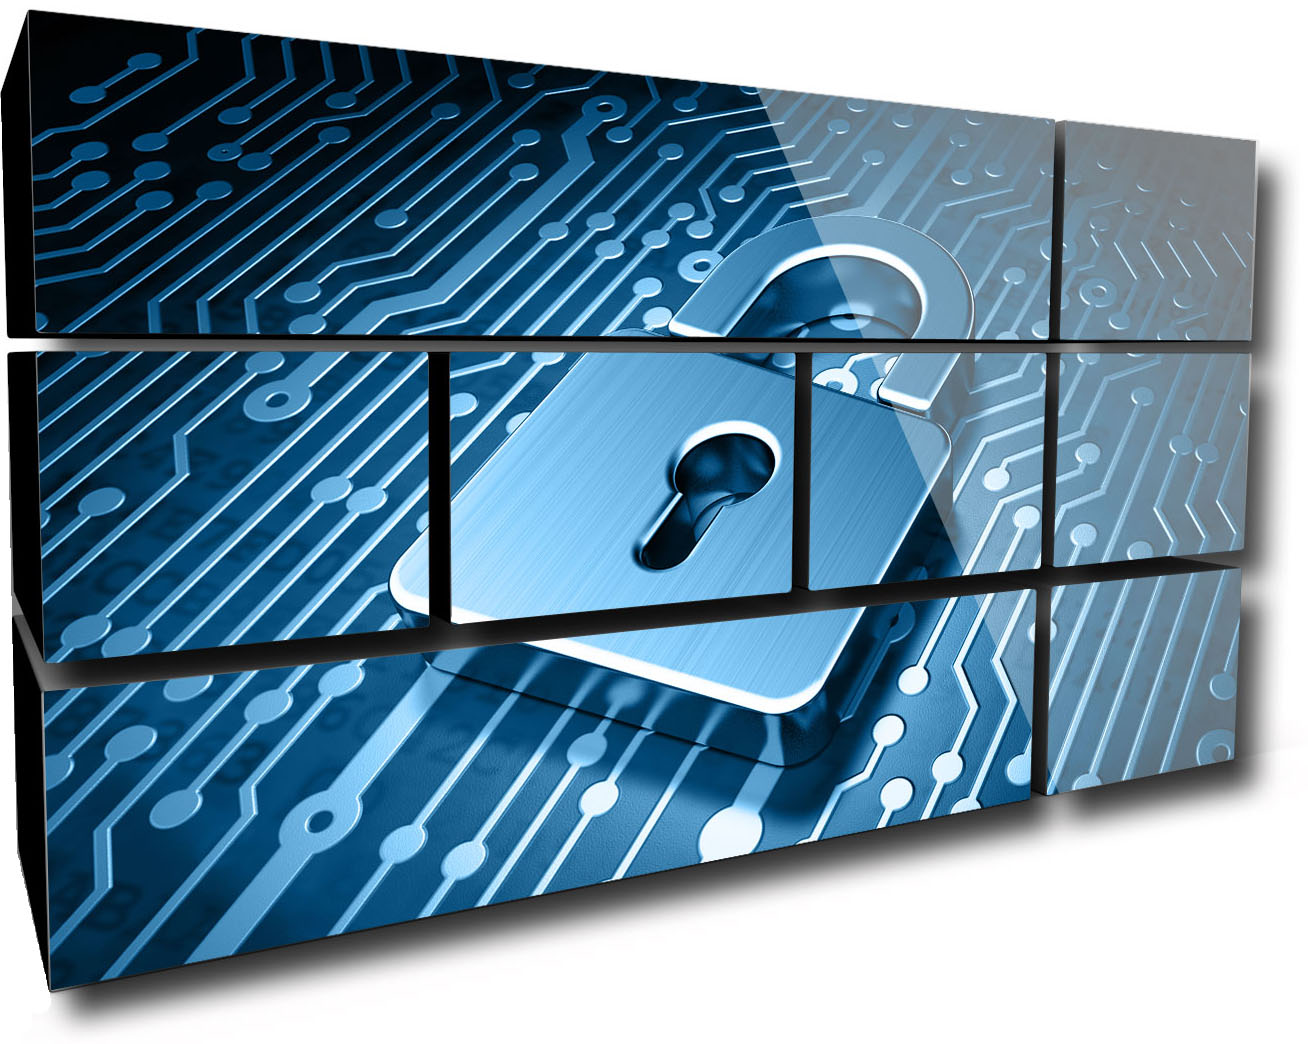 Better Endpoint Protection: Hardware Firewall Security